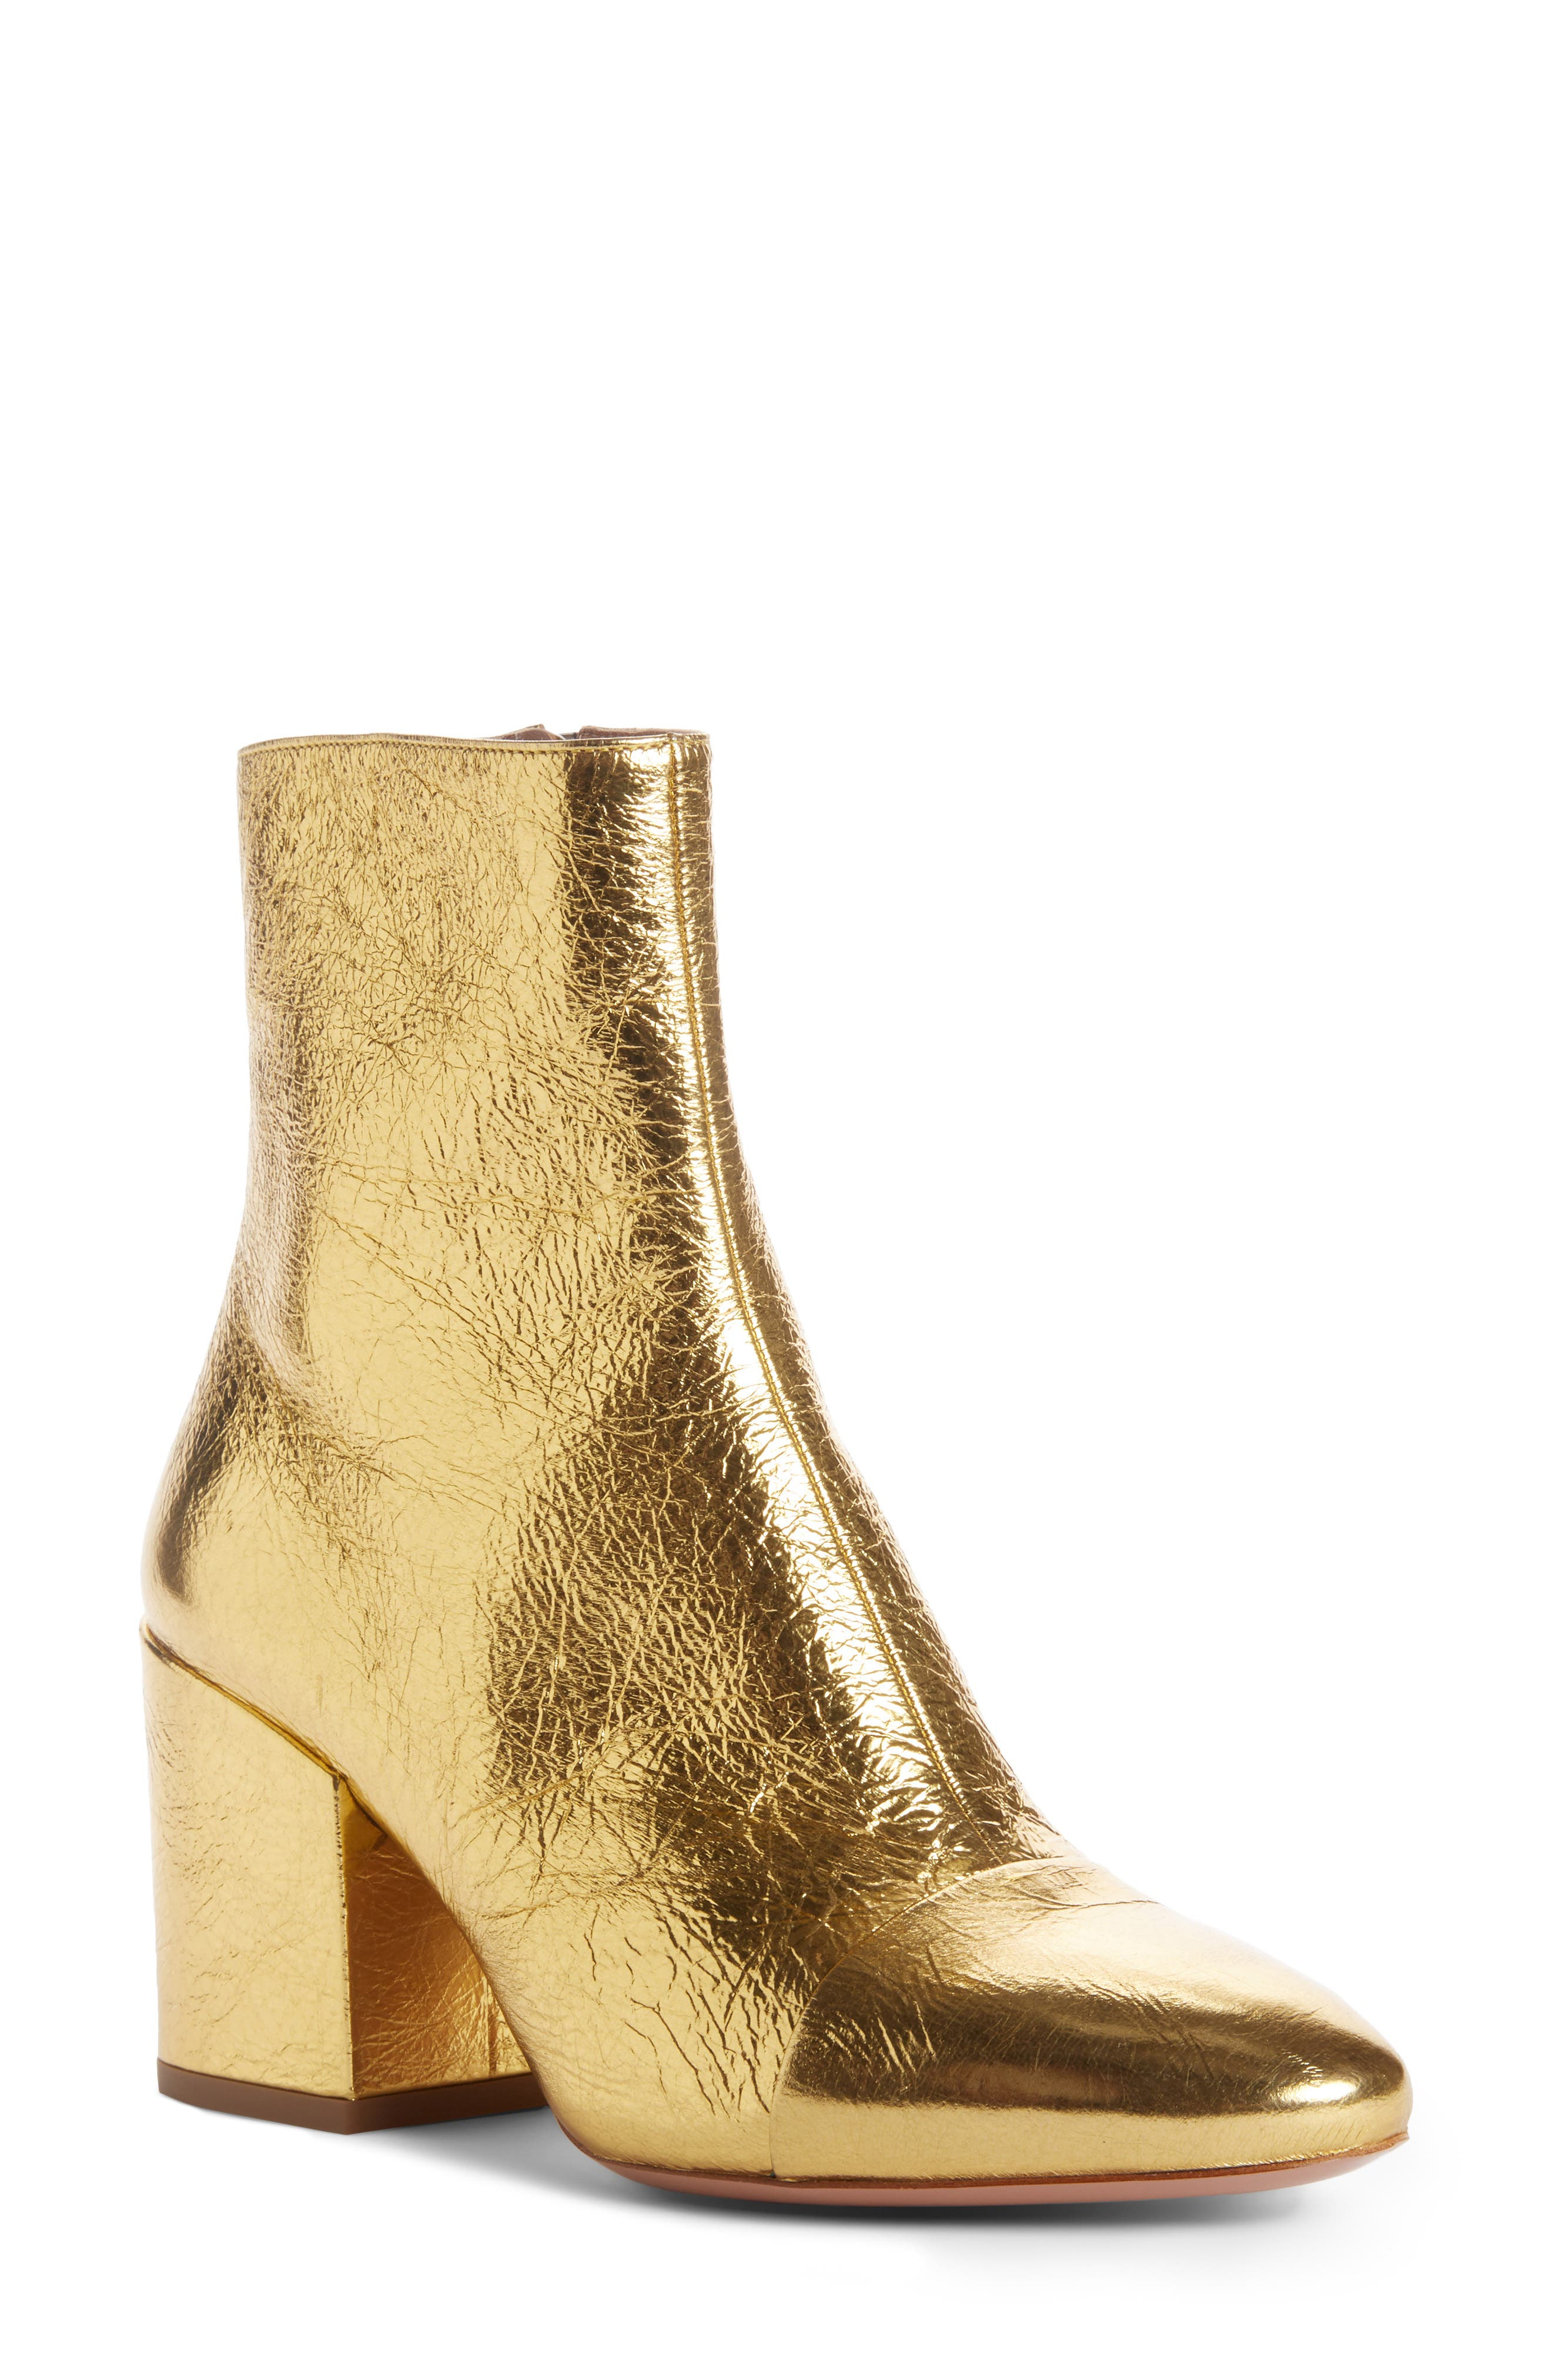 Main Image - Dries Van Noten Pointy Toe Boot (Women)